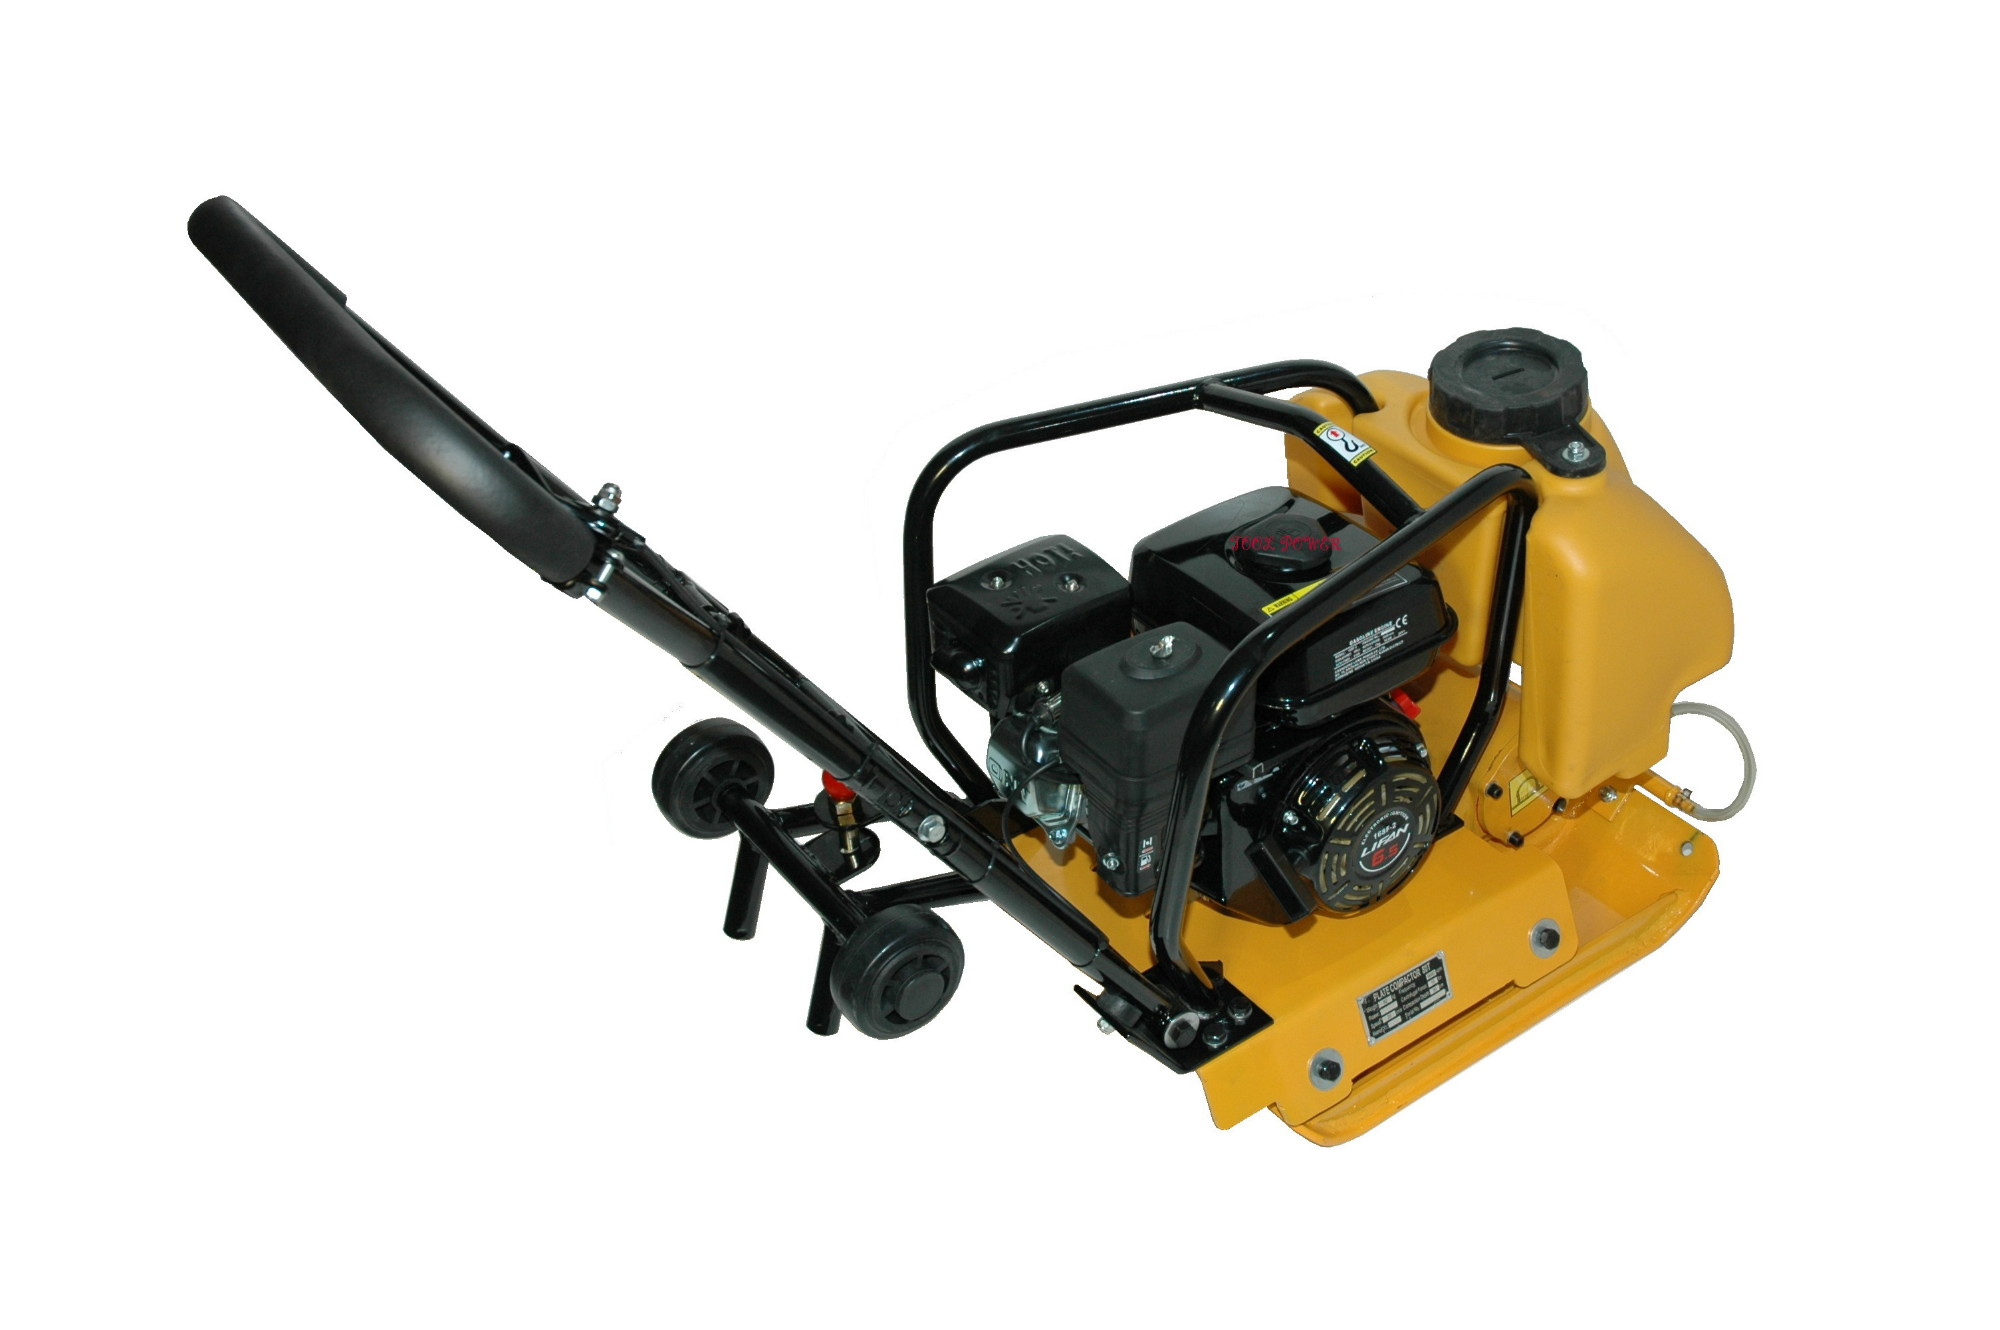 Compactor wet & dry LIFAN 6.5-hp extreme quality engine -1328